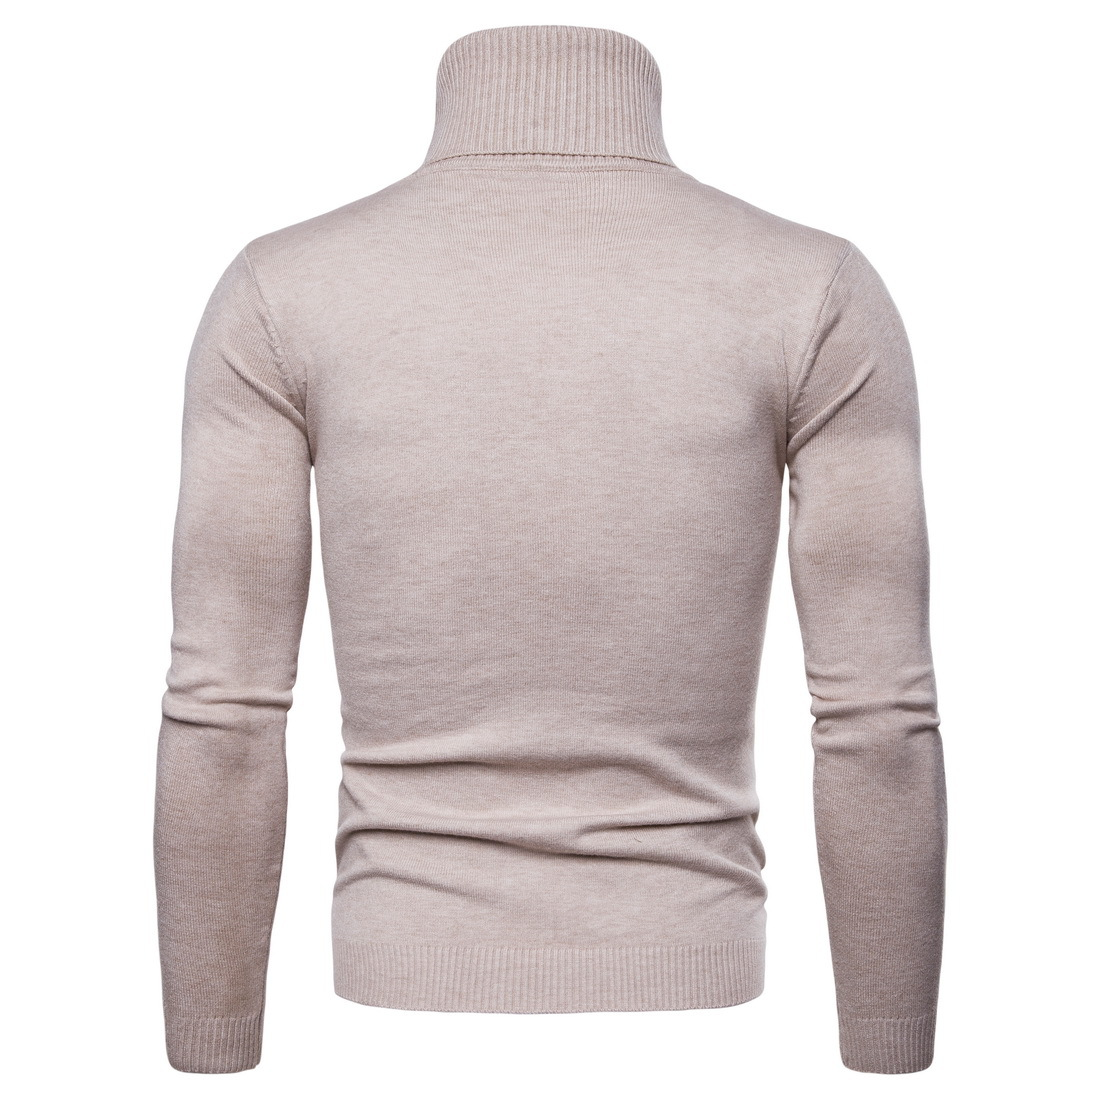 latest handsome men cotton blending 8 color solid dyed high collar sweater knitwear